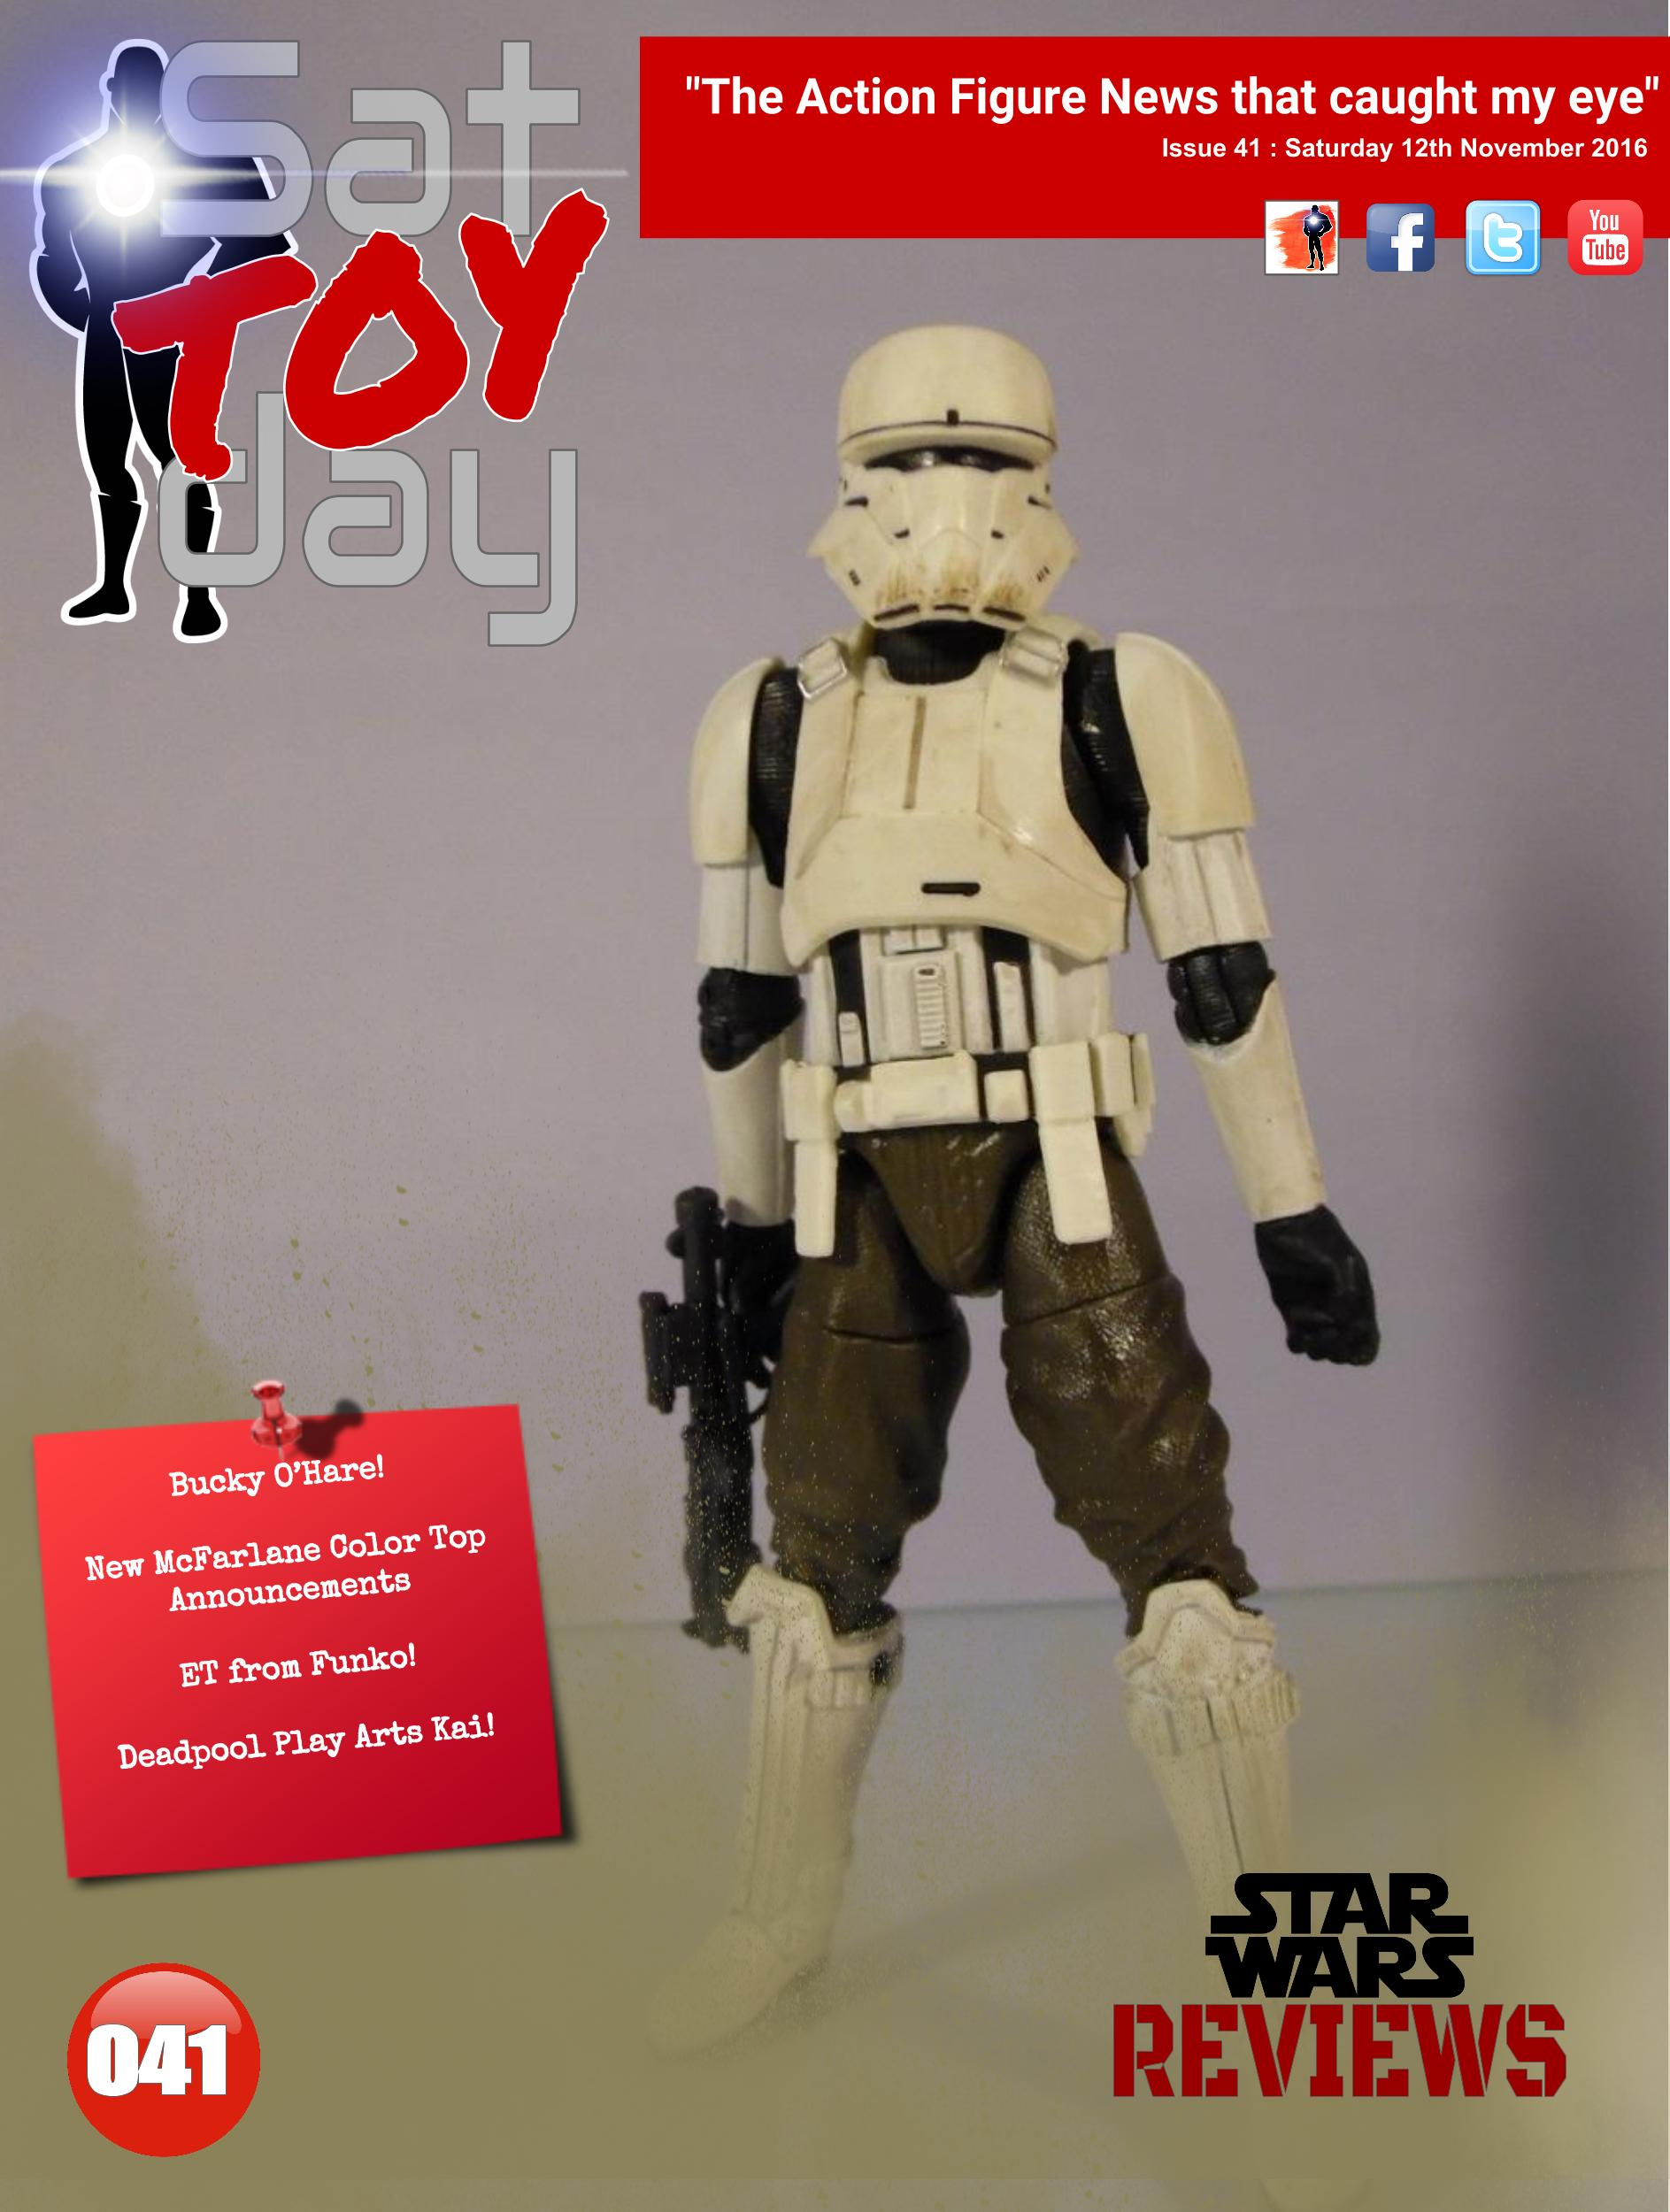 041 Action Figure Sat-TOY-day News, 12th November 2016 (1)